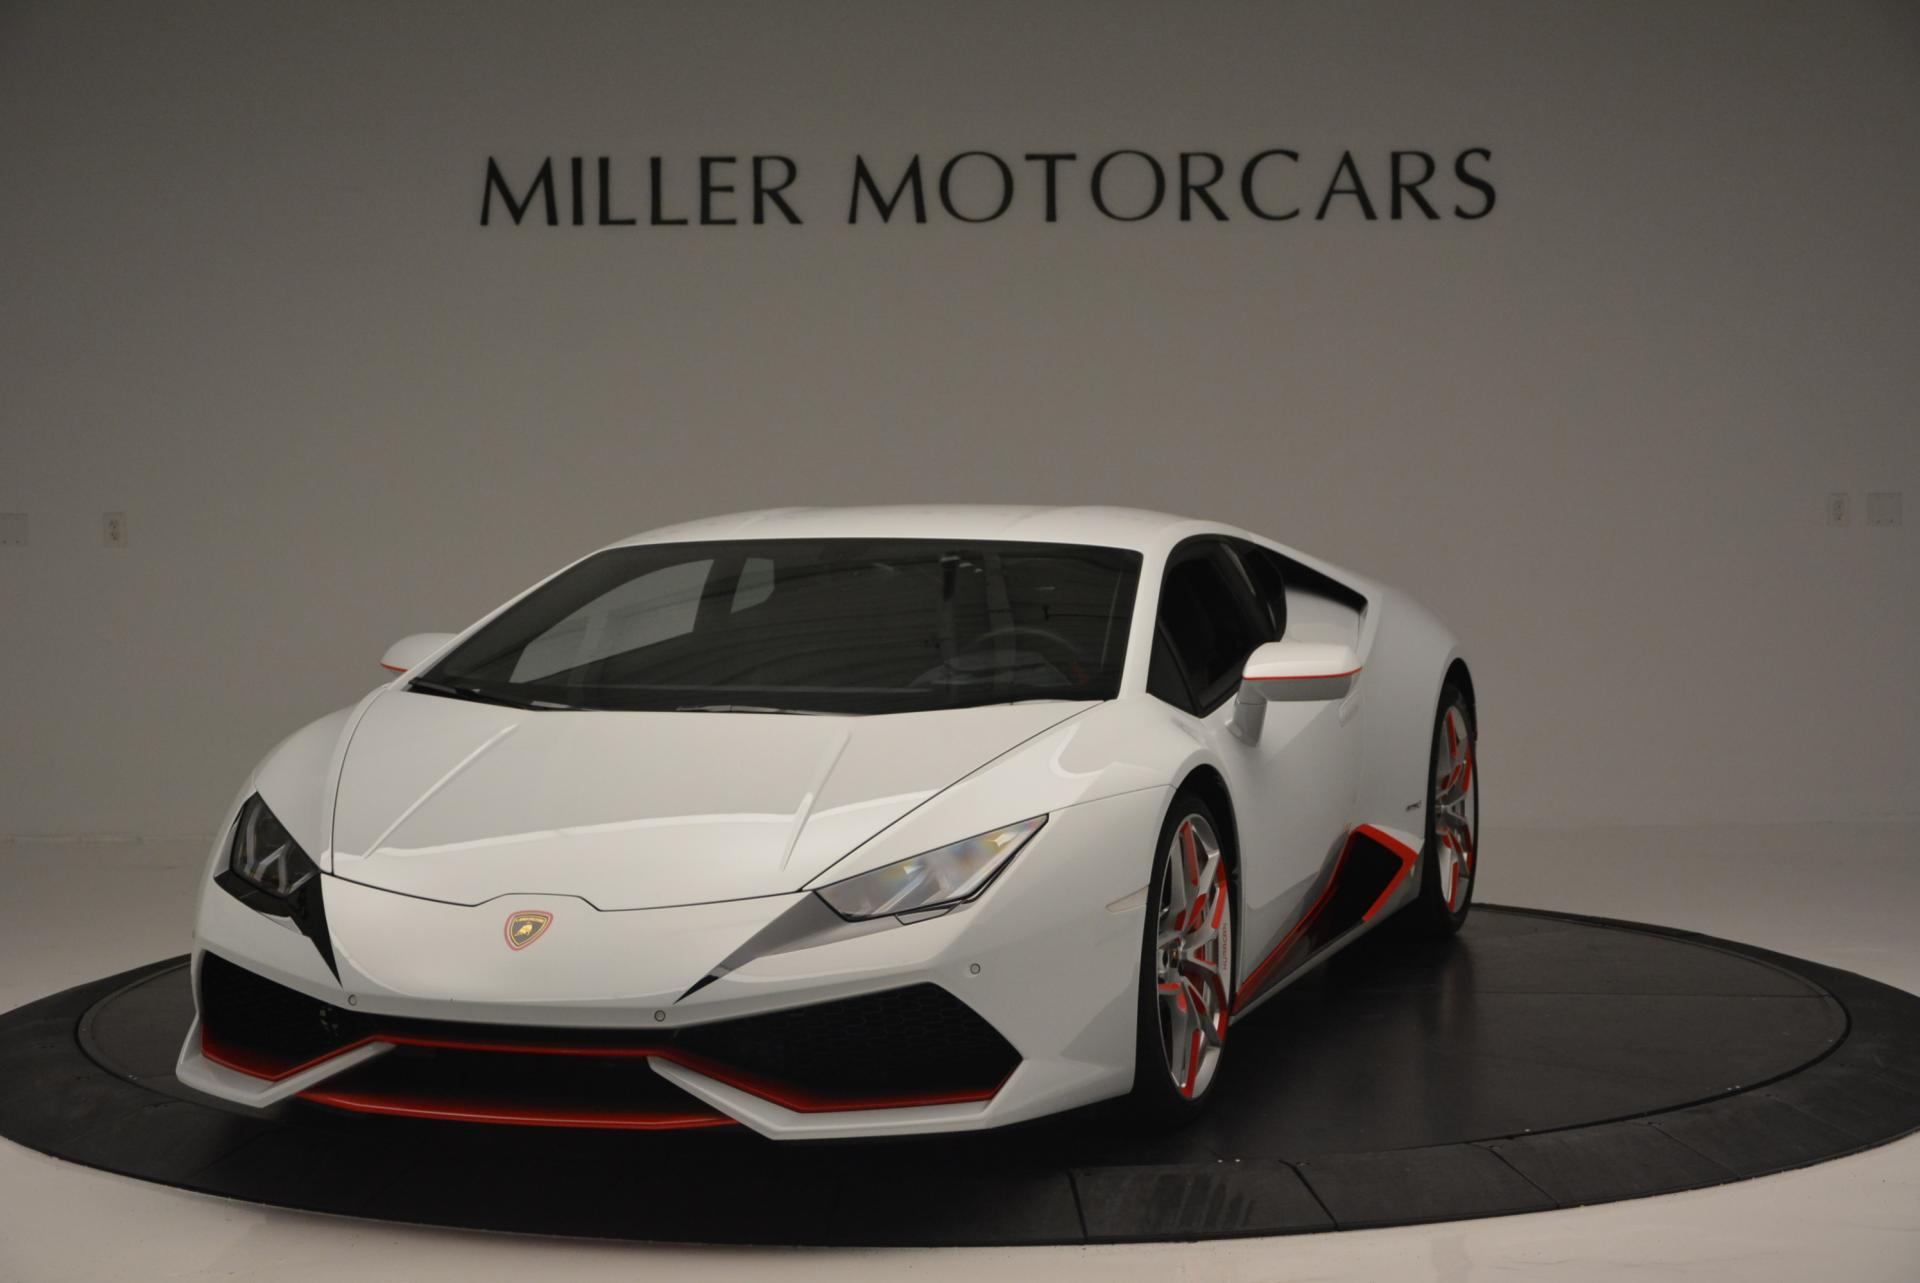 Used 2015 Lamborghini Huracan LP610-4 for sale Sold at Maserati of Westport in Westport CT 06880 1